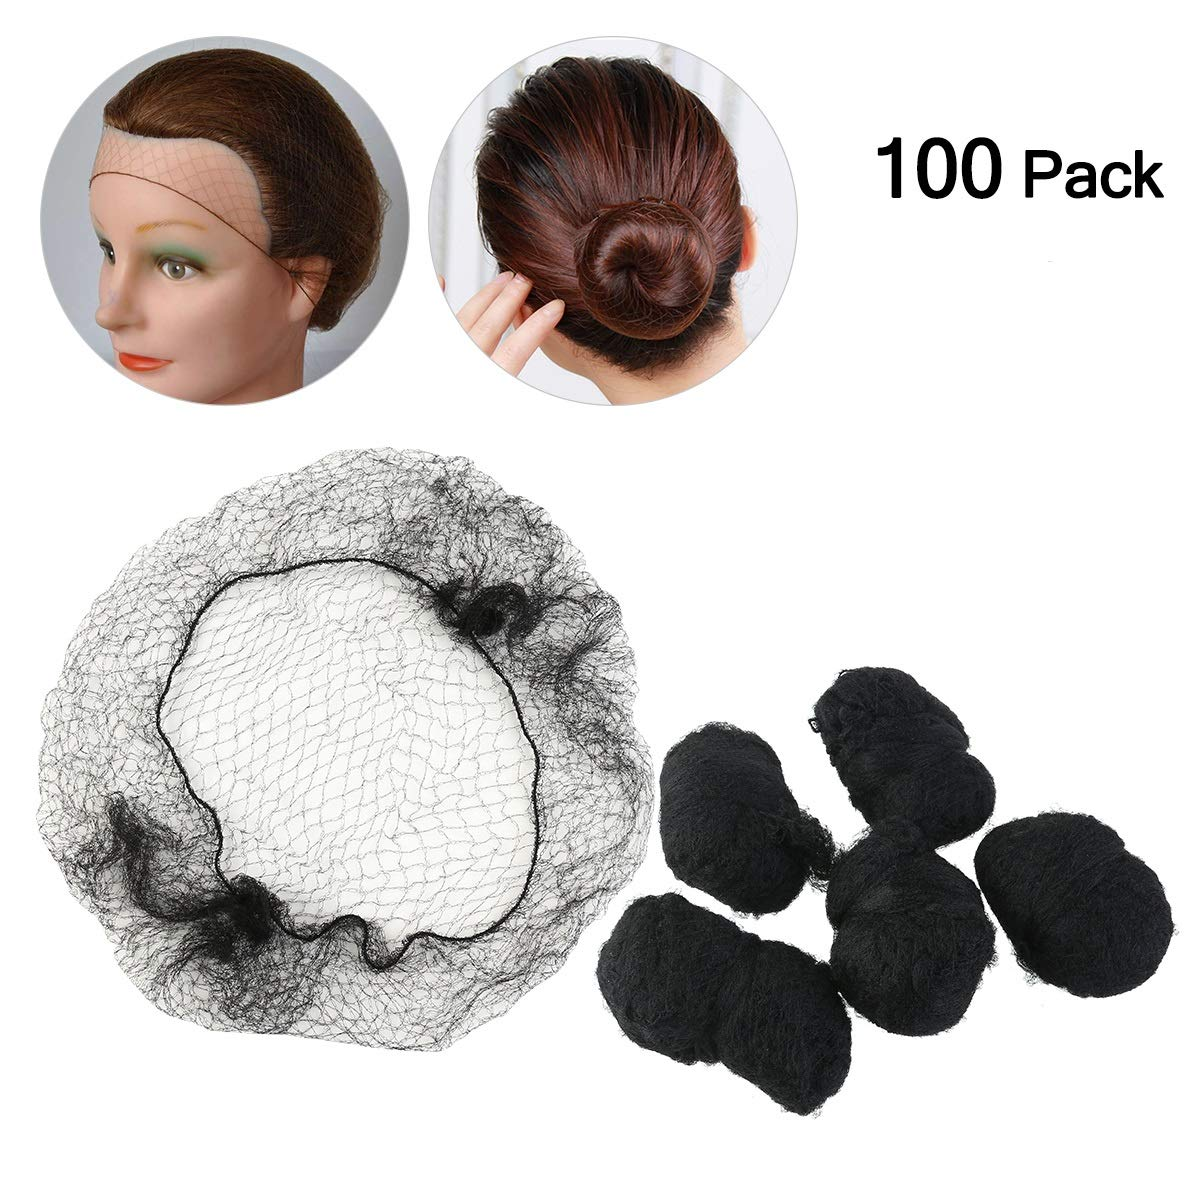 Hair Nets Invisible Elastic Edge Mesh Invisible Hair Net Dress-up Accessories 100pcs (Black)